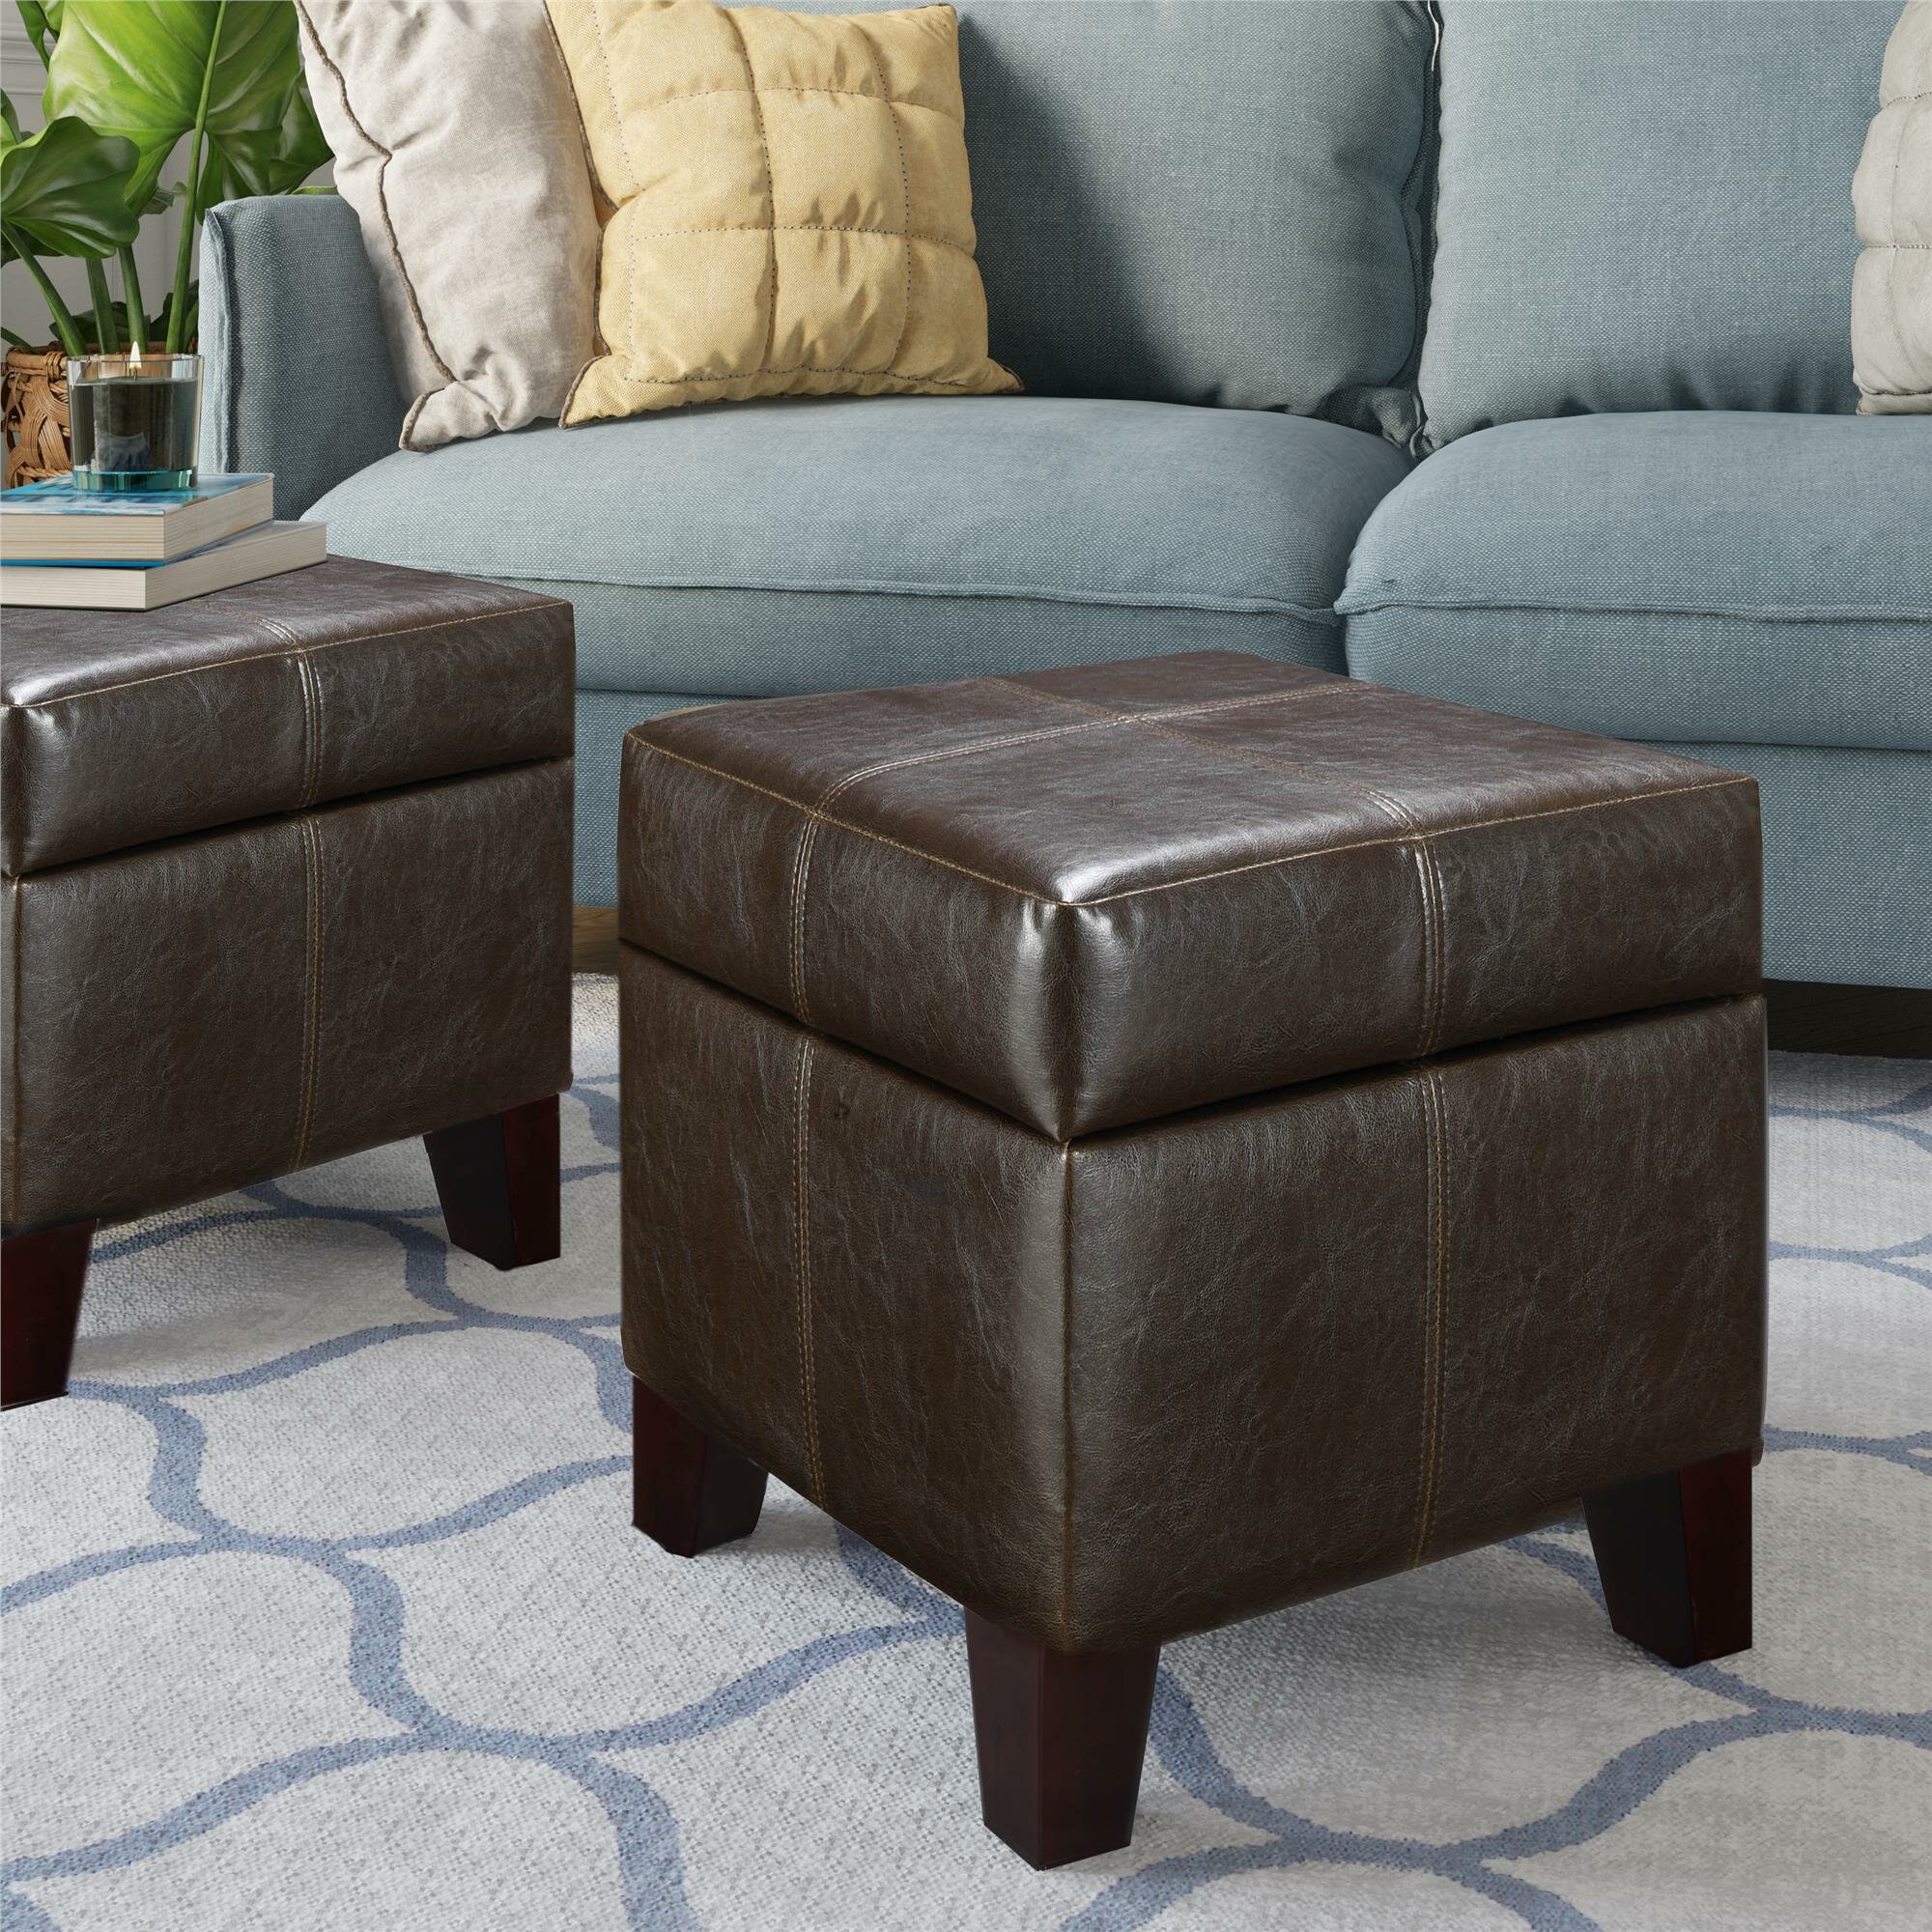 Faux Leather Storage Ottomans Under 100 You Ll Love In 2021 Wayfair